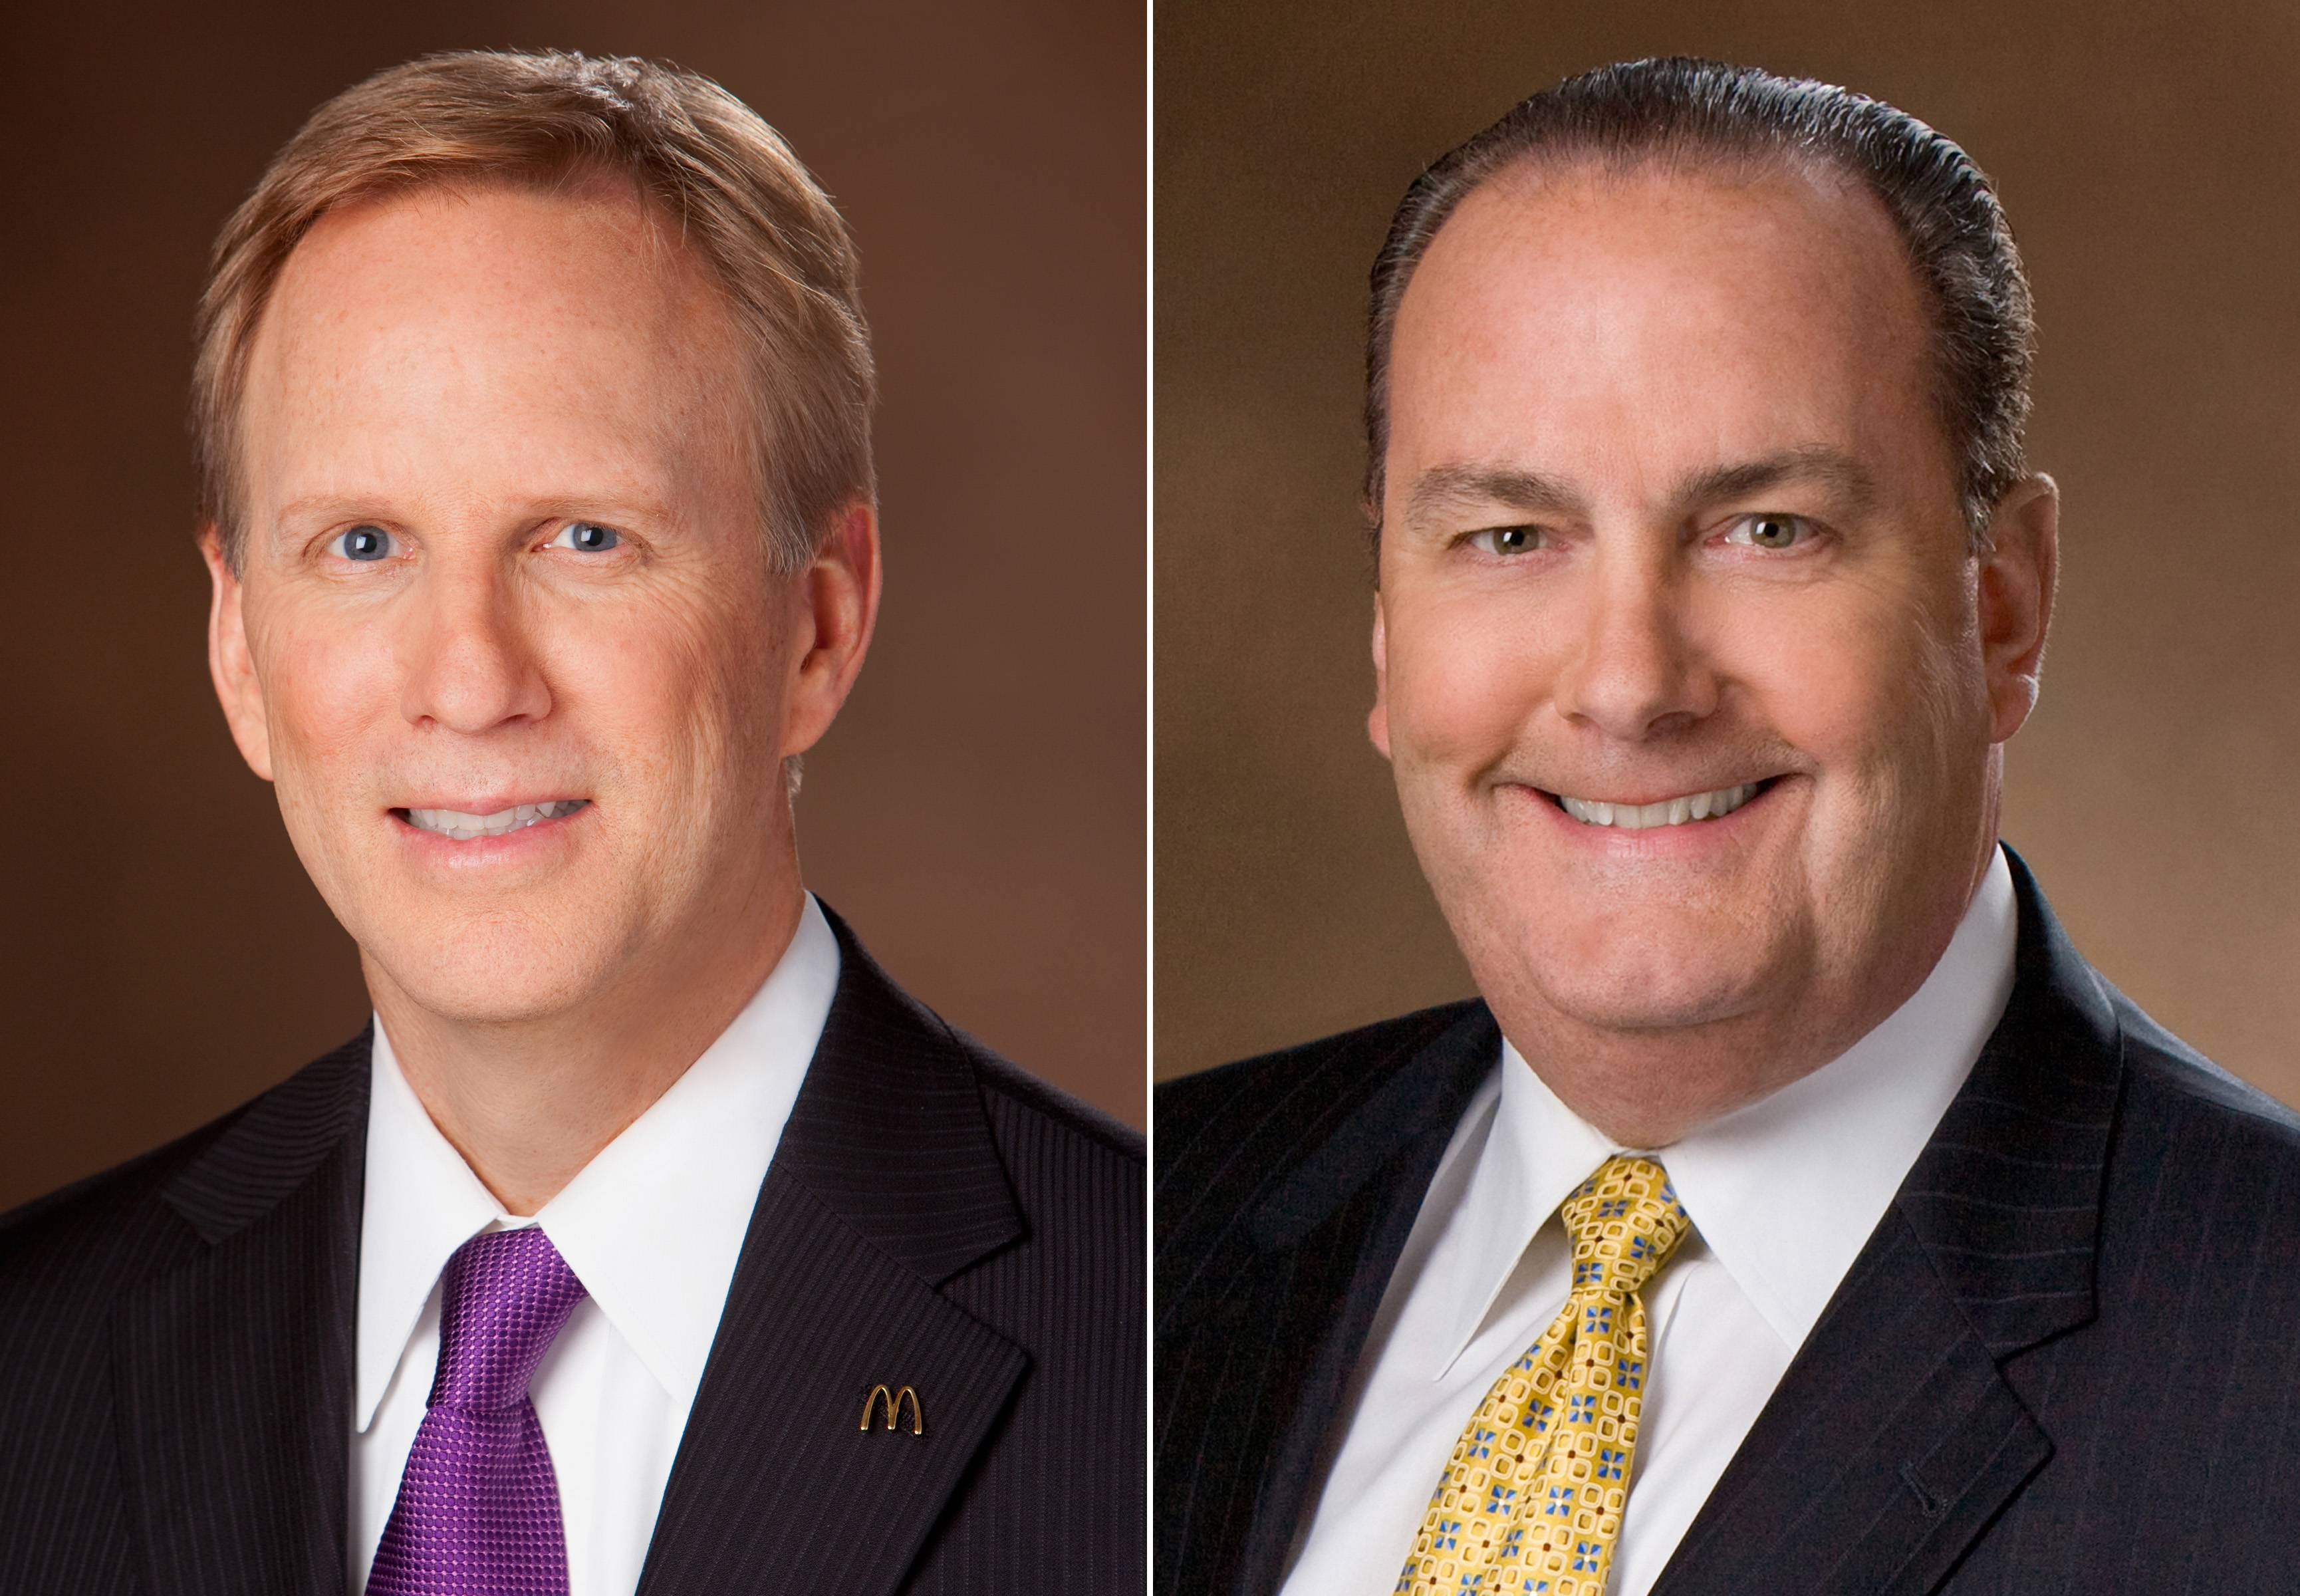 Mike Andres, McDonald's newly named president for its flagship U.S. division, left, and current president Jeff Stratton. The world's biggest hamburger chain on Friday, Aug. 22, 2014 said Andres will replace Stratton, who is retiring effective Oct. 15.